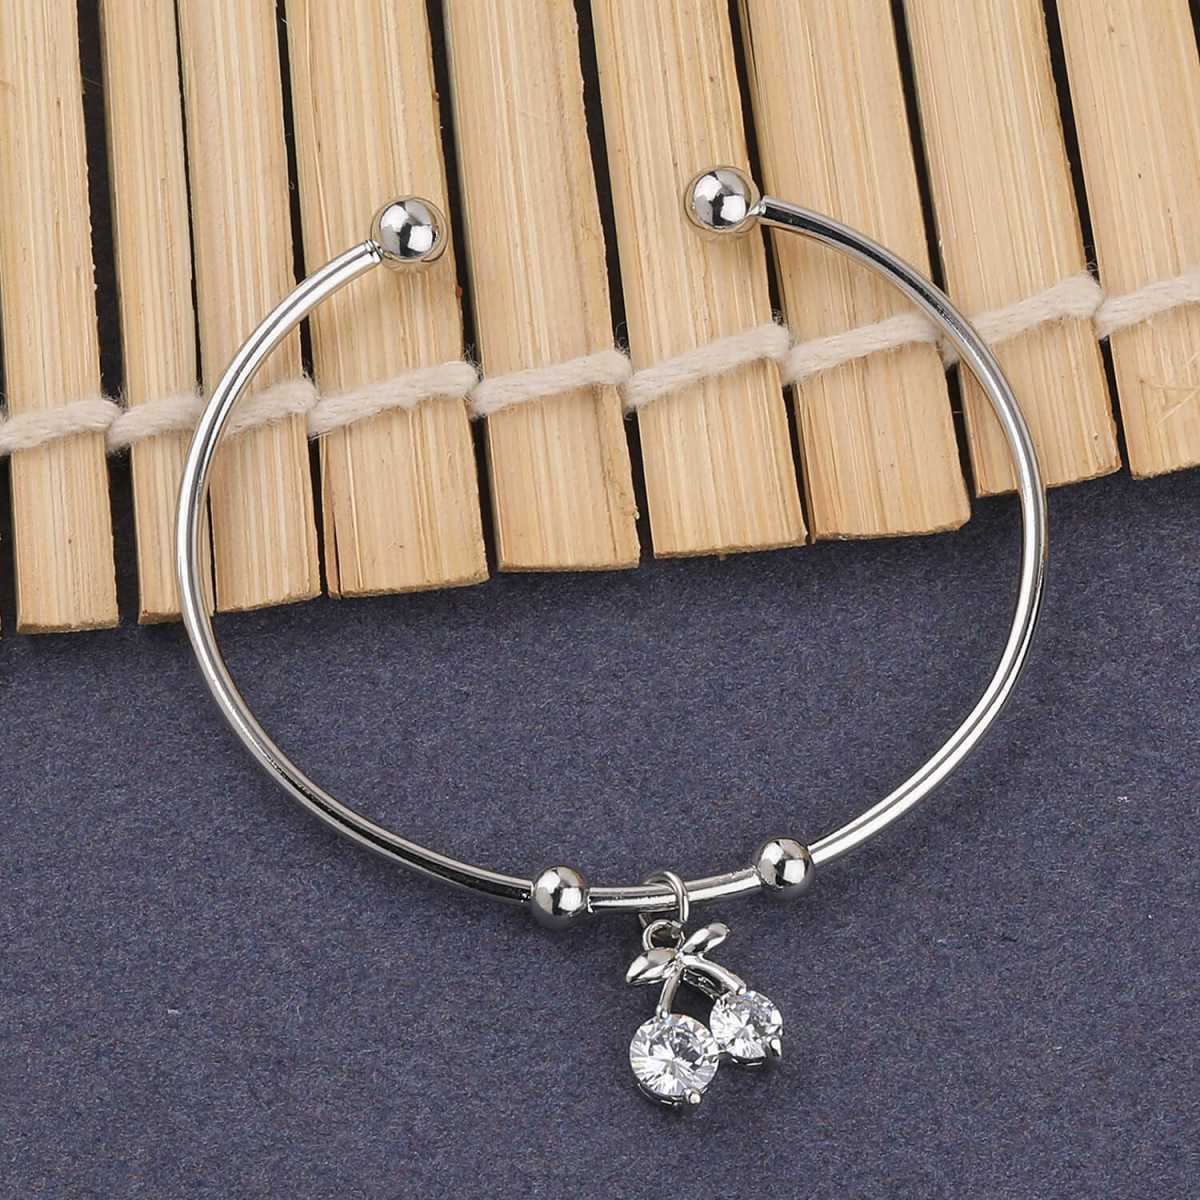 SILVER SHINE Antique Silver Plated Adjustable Diamond Bracelet For Women Girls